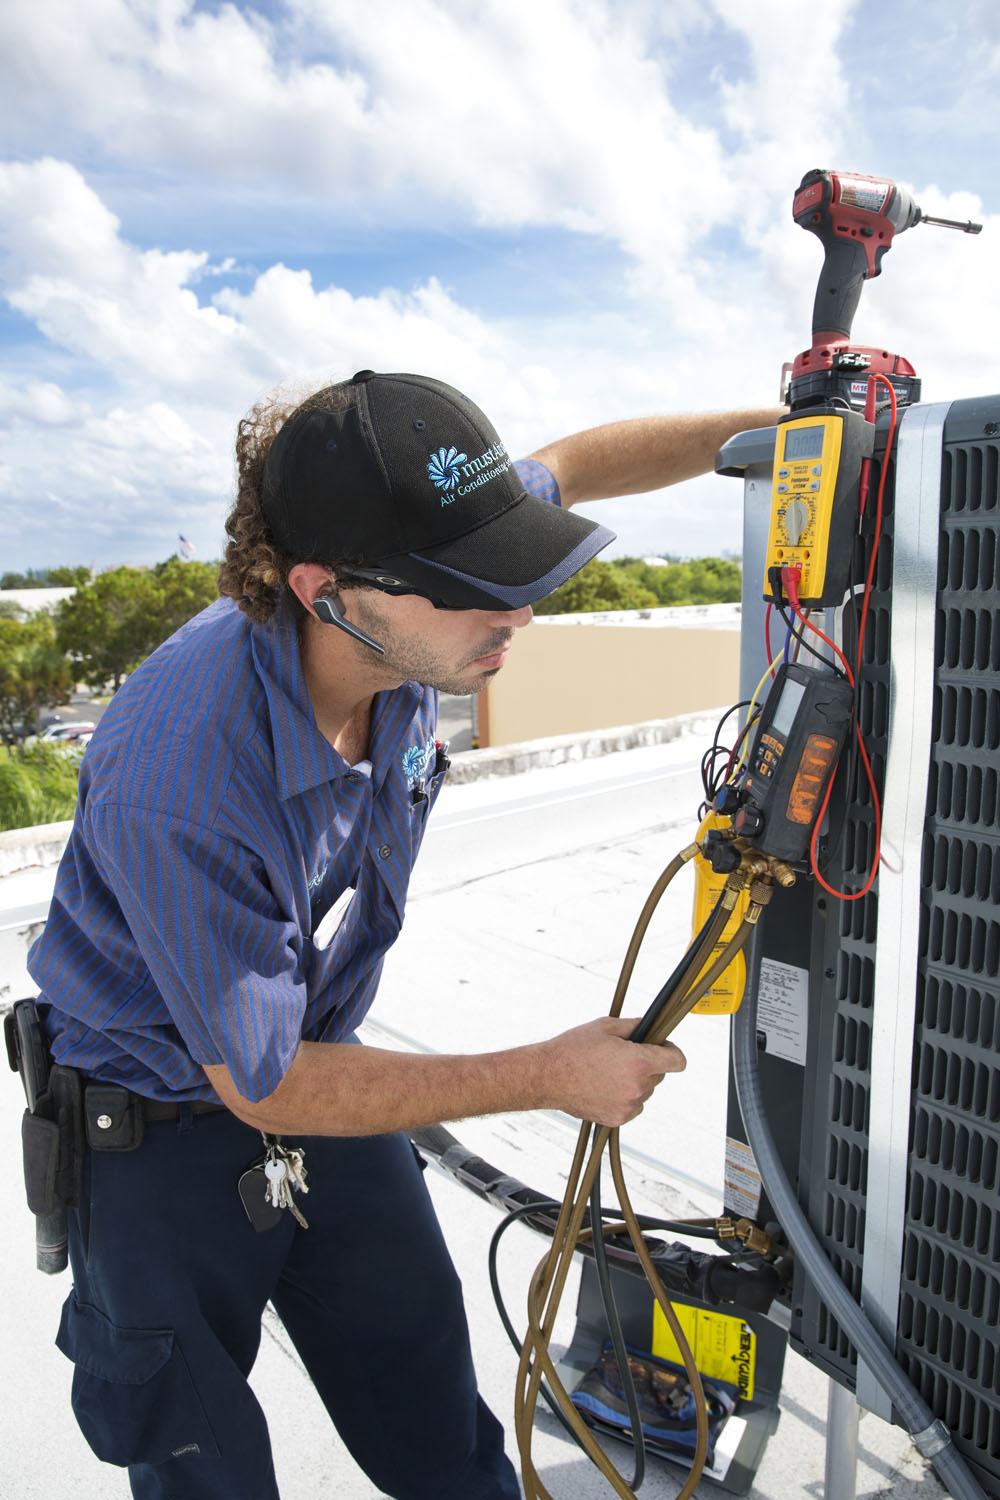 medium resolution of when you need air conditioning repair service replacement or tune up in boca raton coconut creek coral springs deerfield beach fort lauderdale